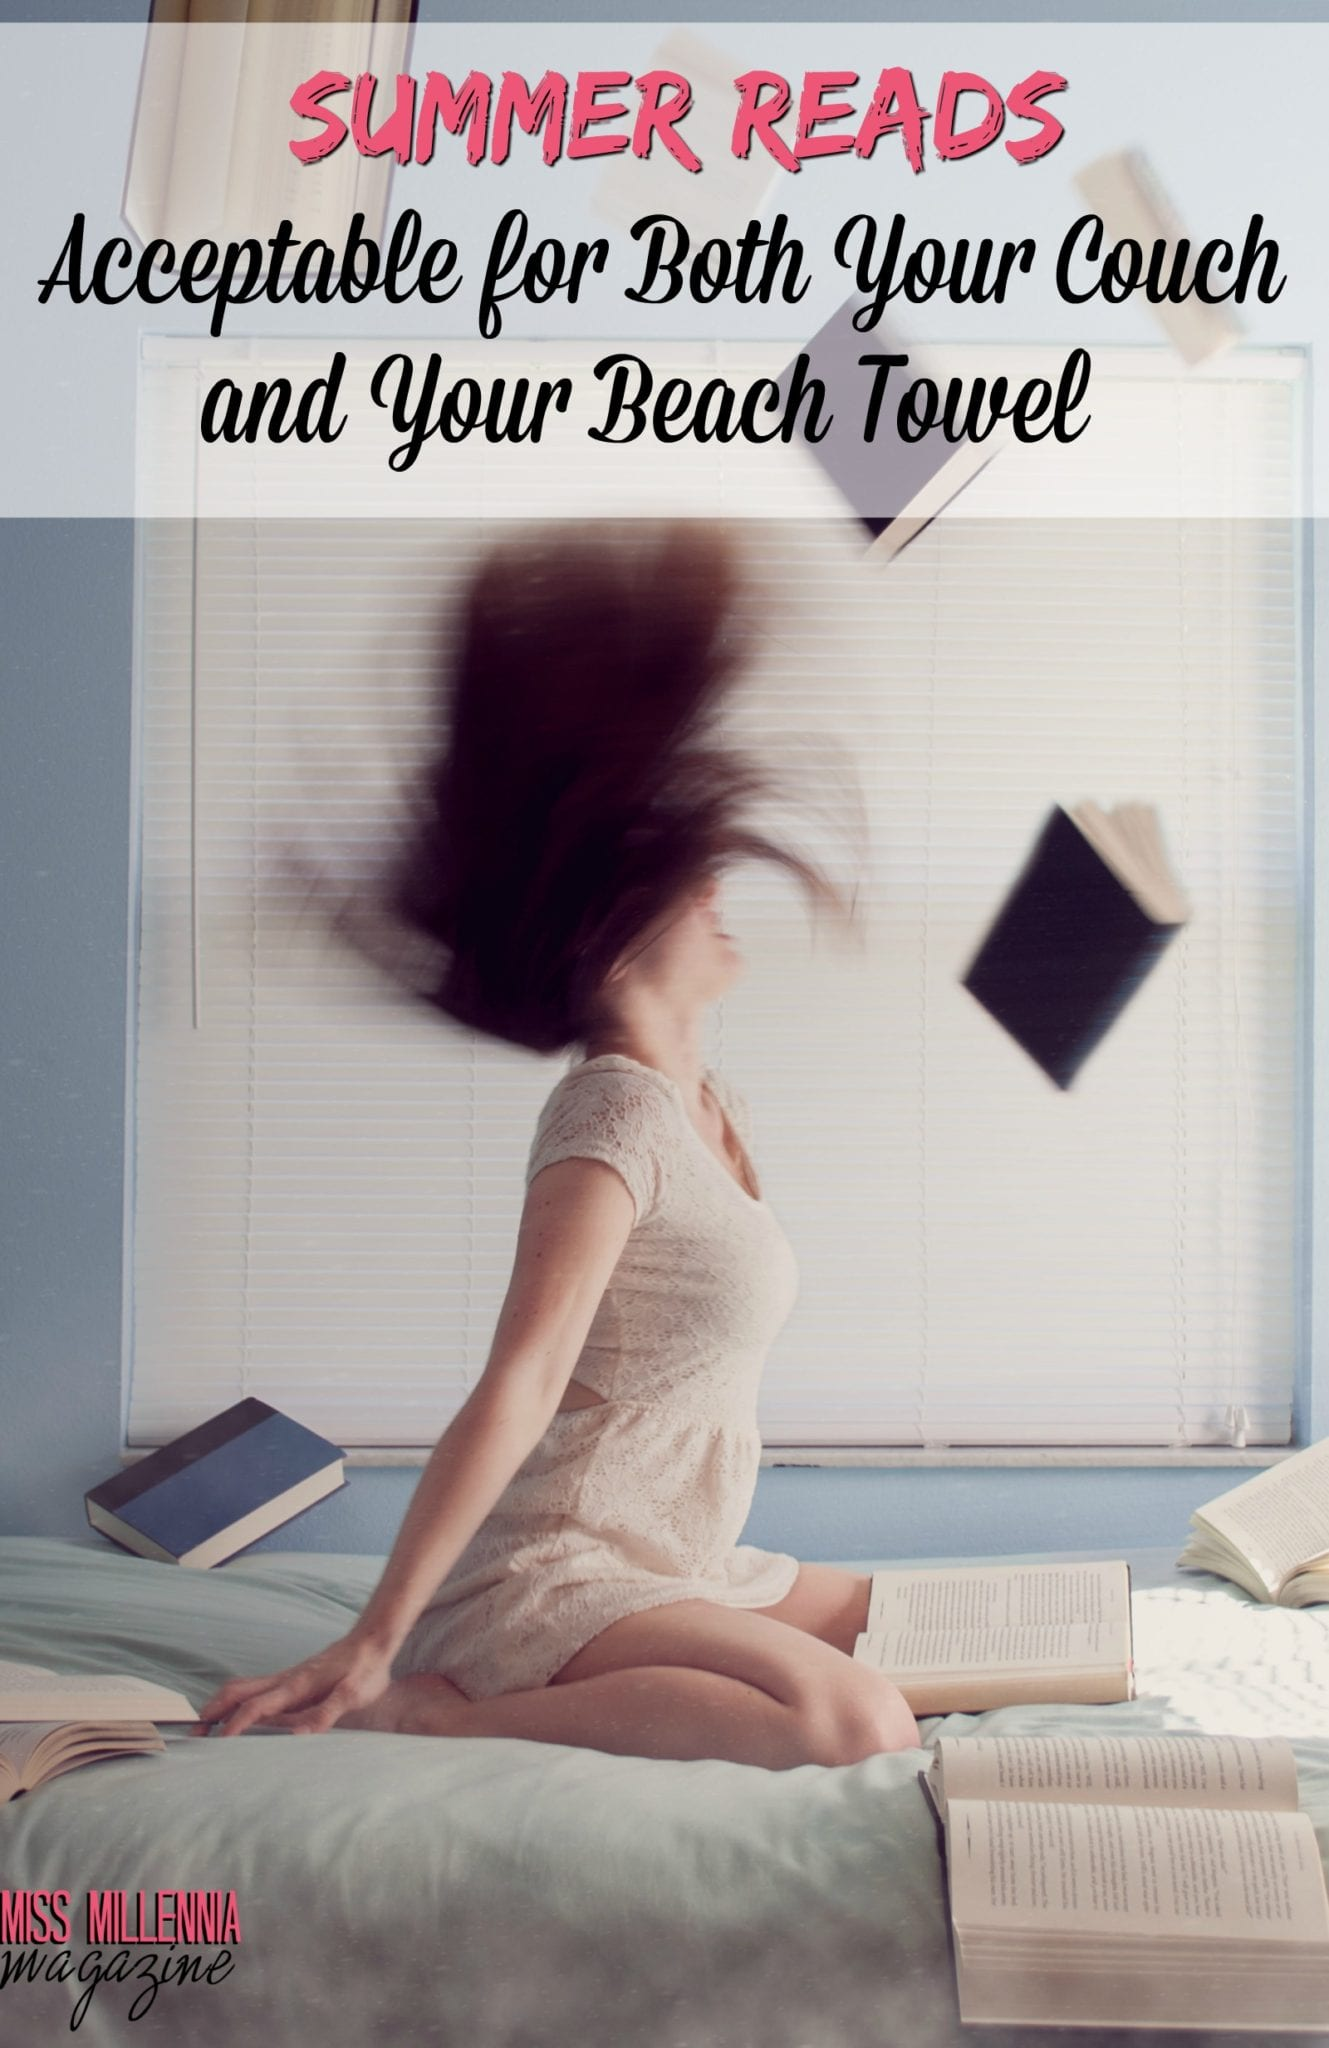 Summer Reads Acceptable for Both Your Couch and Your Beach Towel